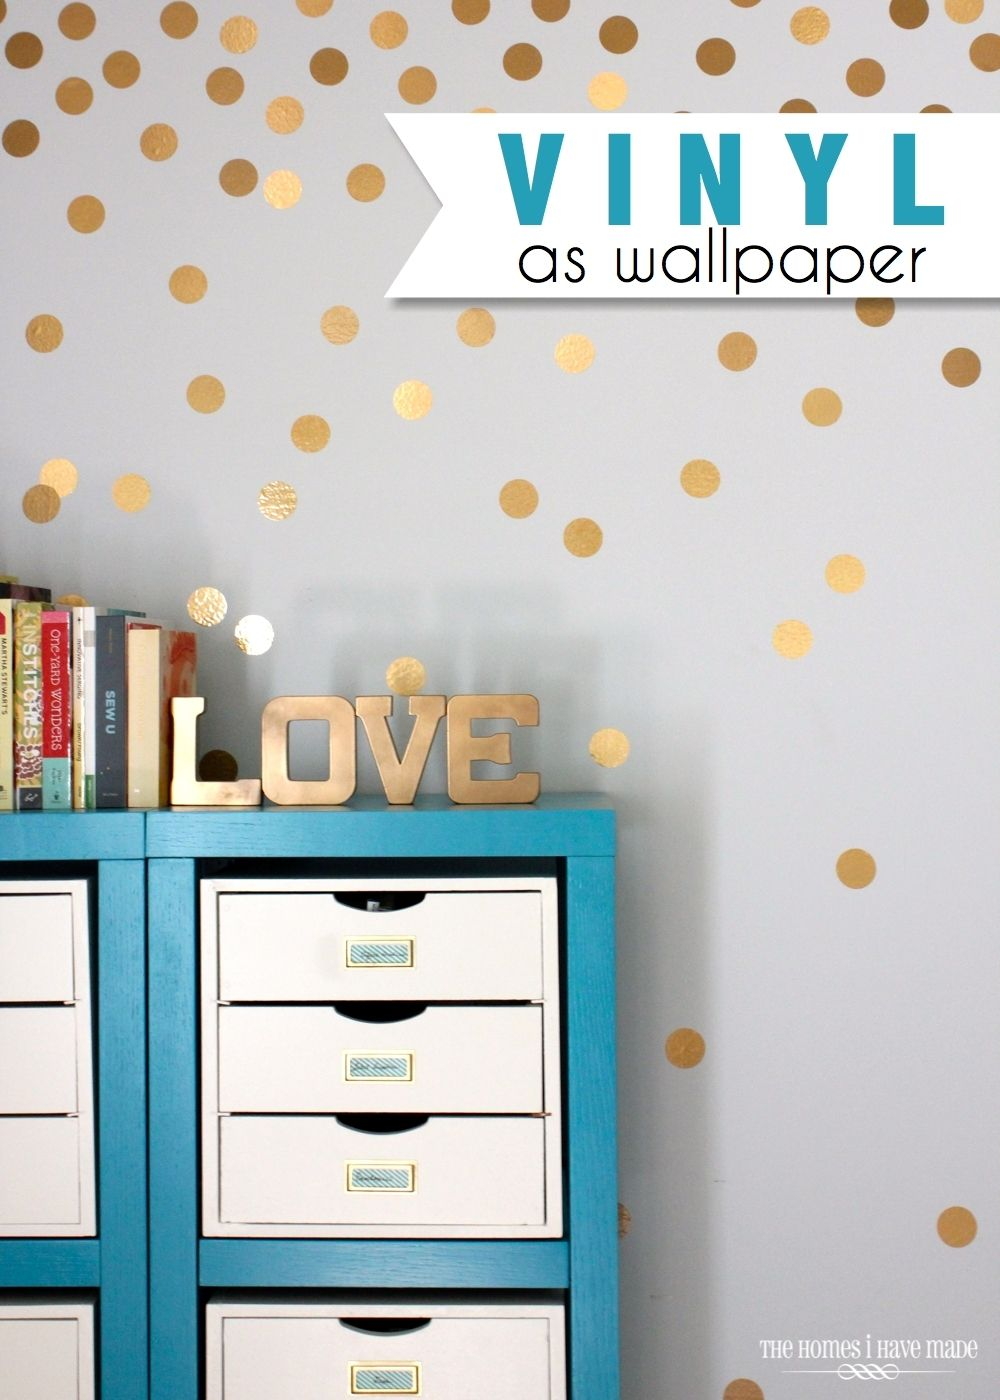 4 Creative Ways to Use Vinyl on Your Walls! : Apartment Living Blog